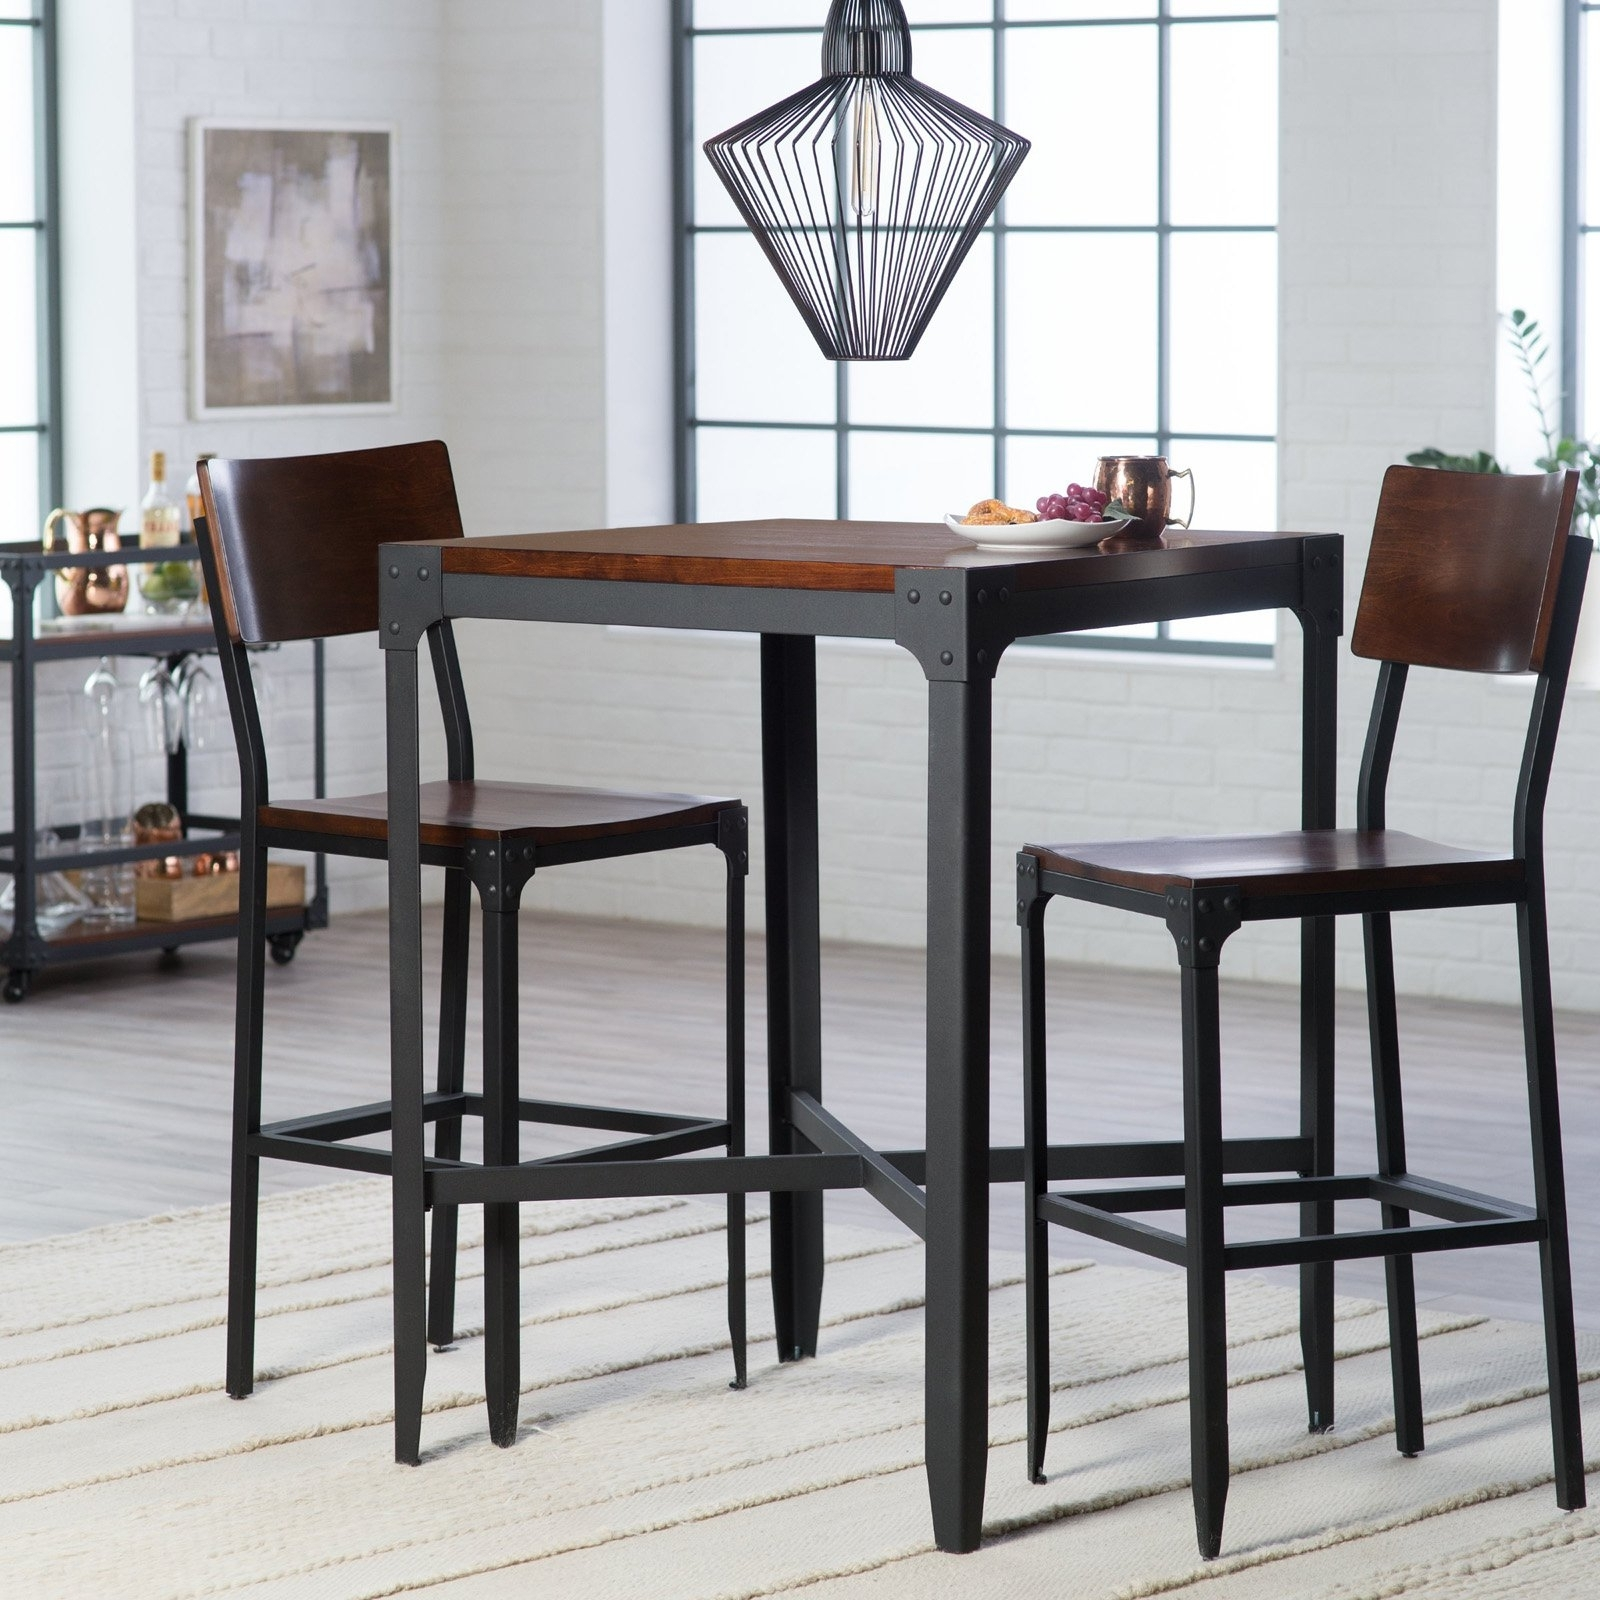 Recent 54 Bar Height Pub Table Sets, Small Dining Tables For 2 Our Top 6 Intended For Palazzo 3 Piece Dining Table Sets (View 11 of 25)